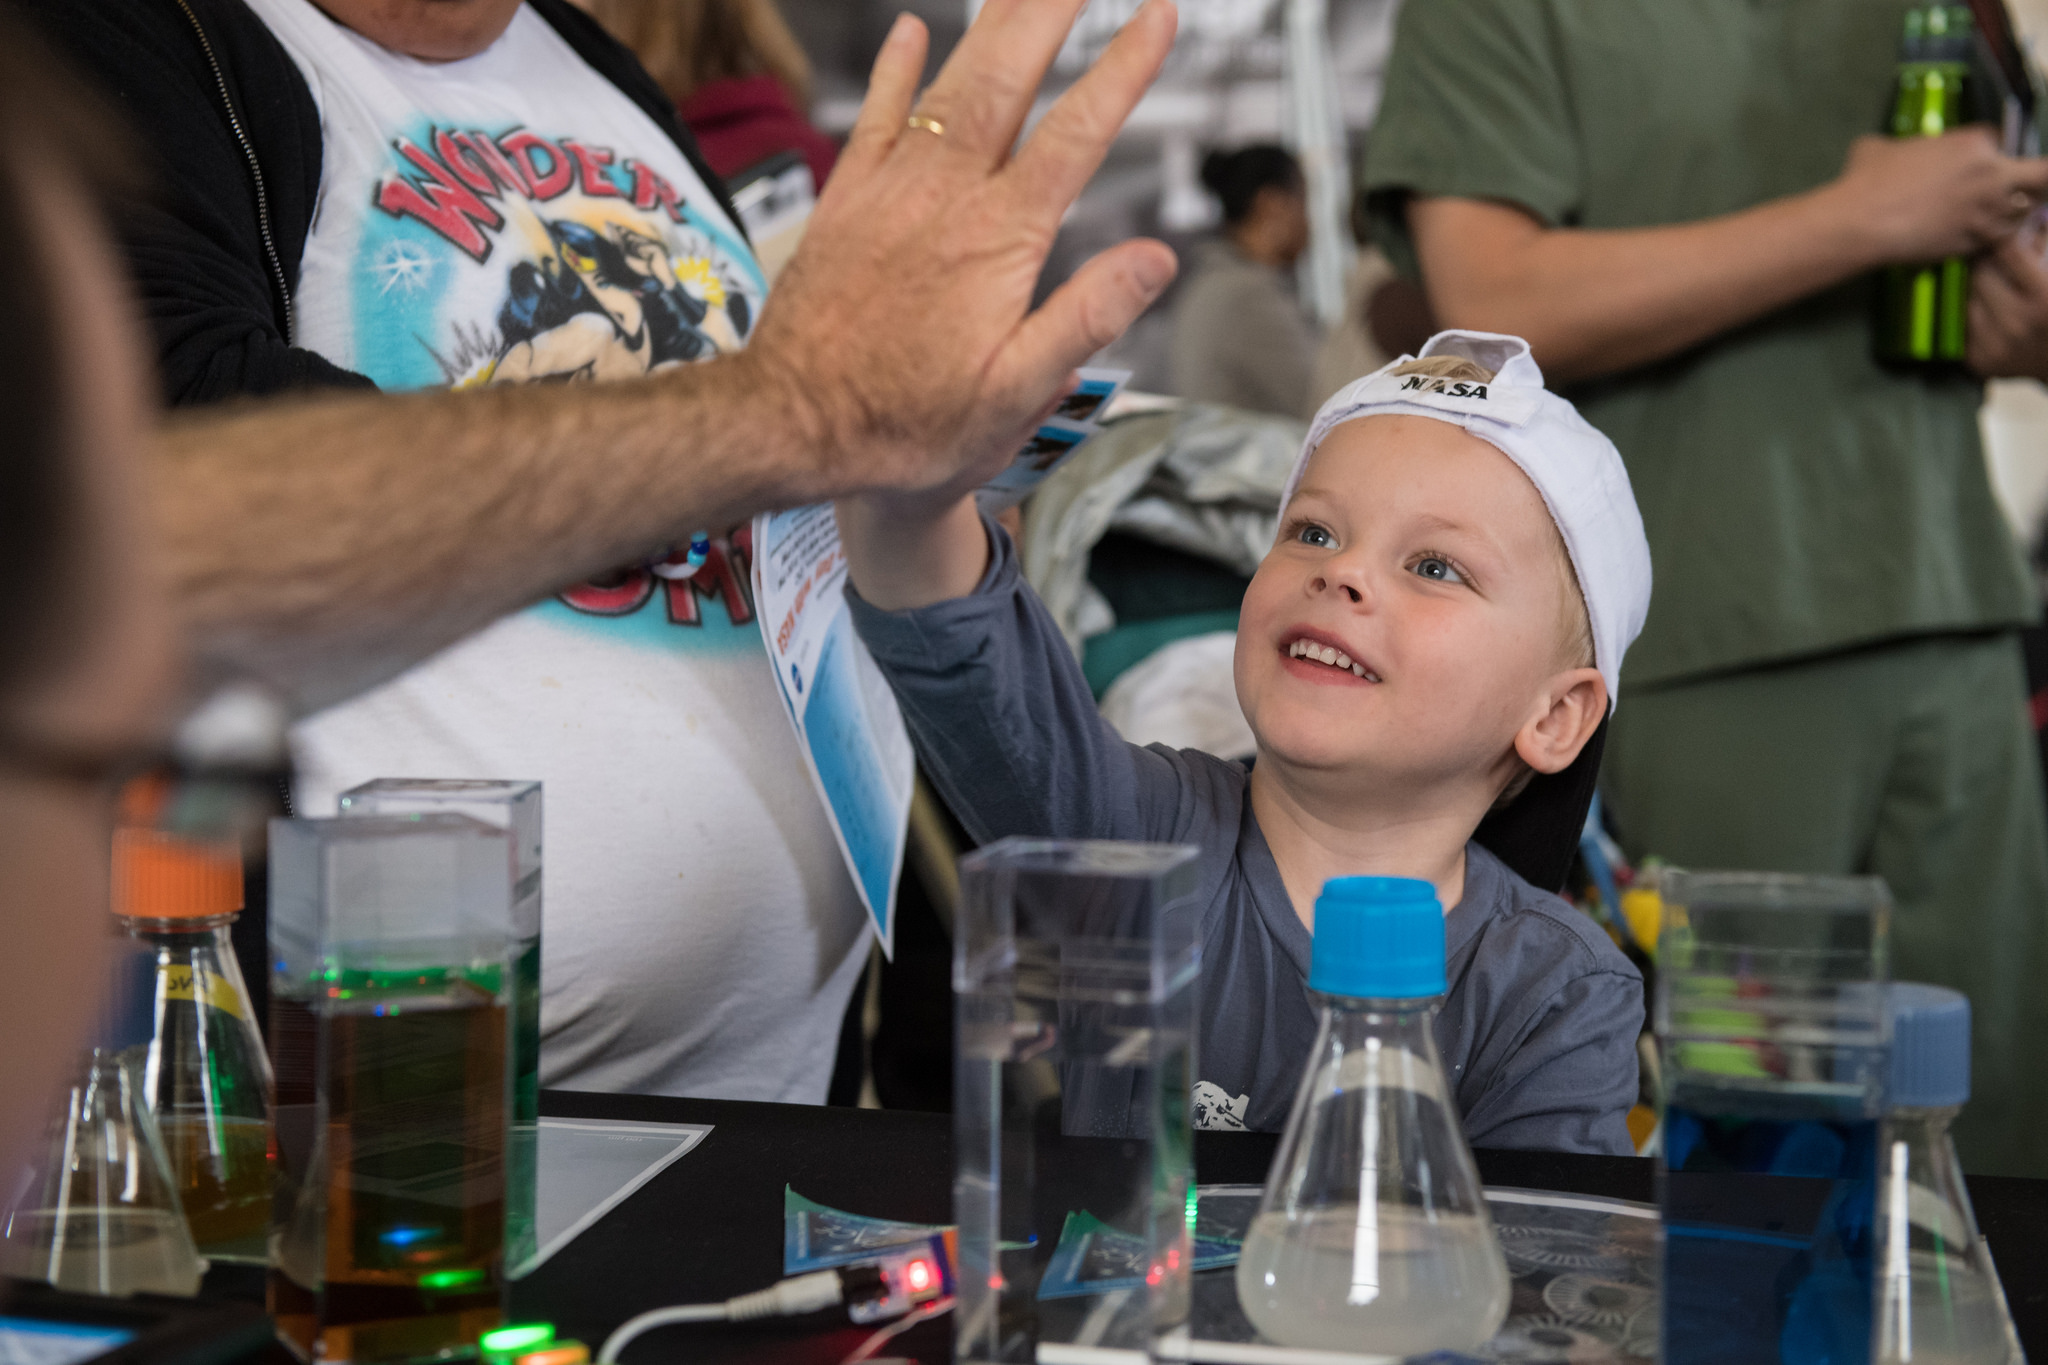 A visitor gives a high five after learning about phytoplankton at the PACE table at the Earth Day event at Union Station in Washington, D.C.